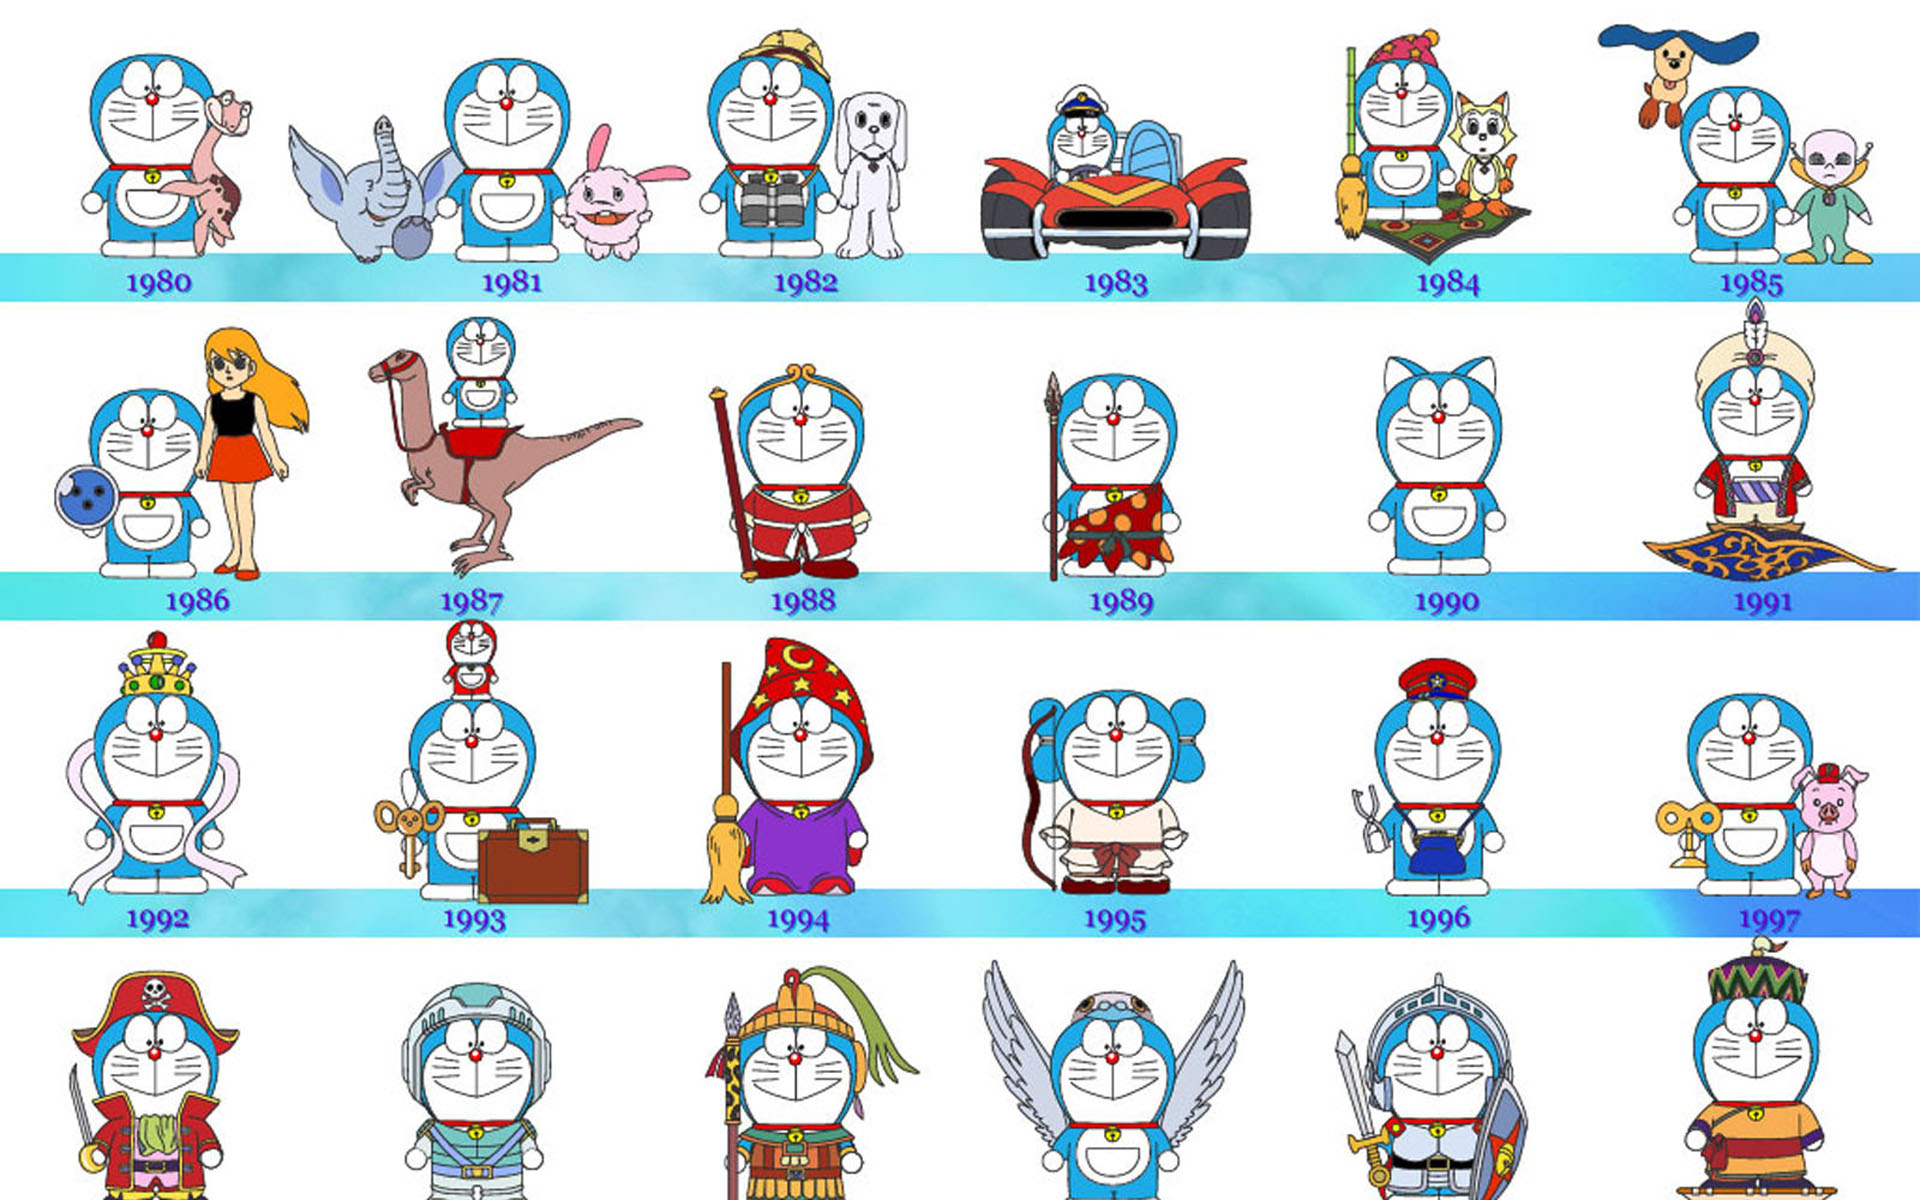 73 ] Wallpapers Doraemon On WallpaperSafari